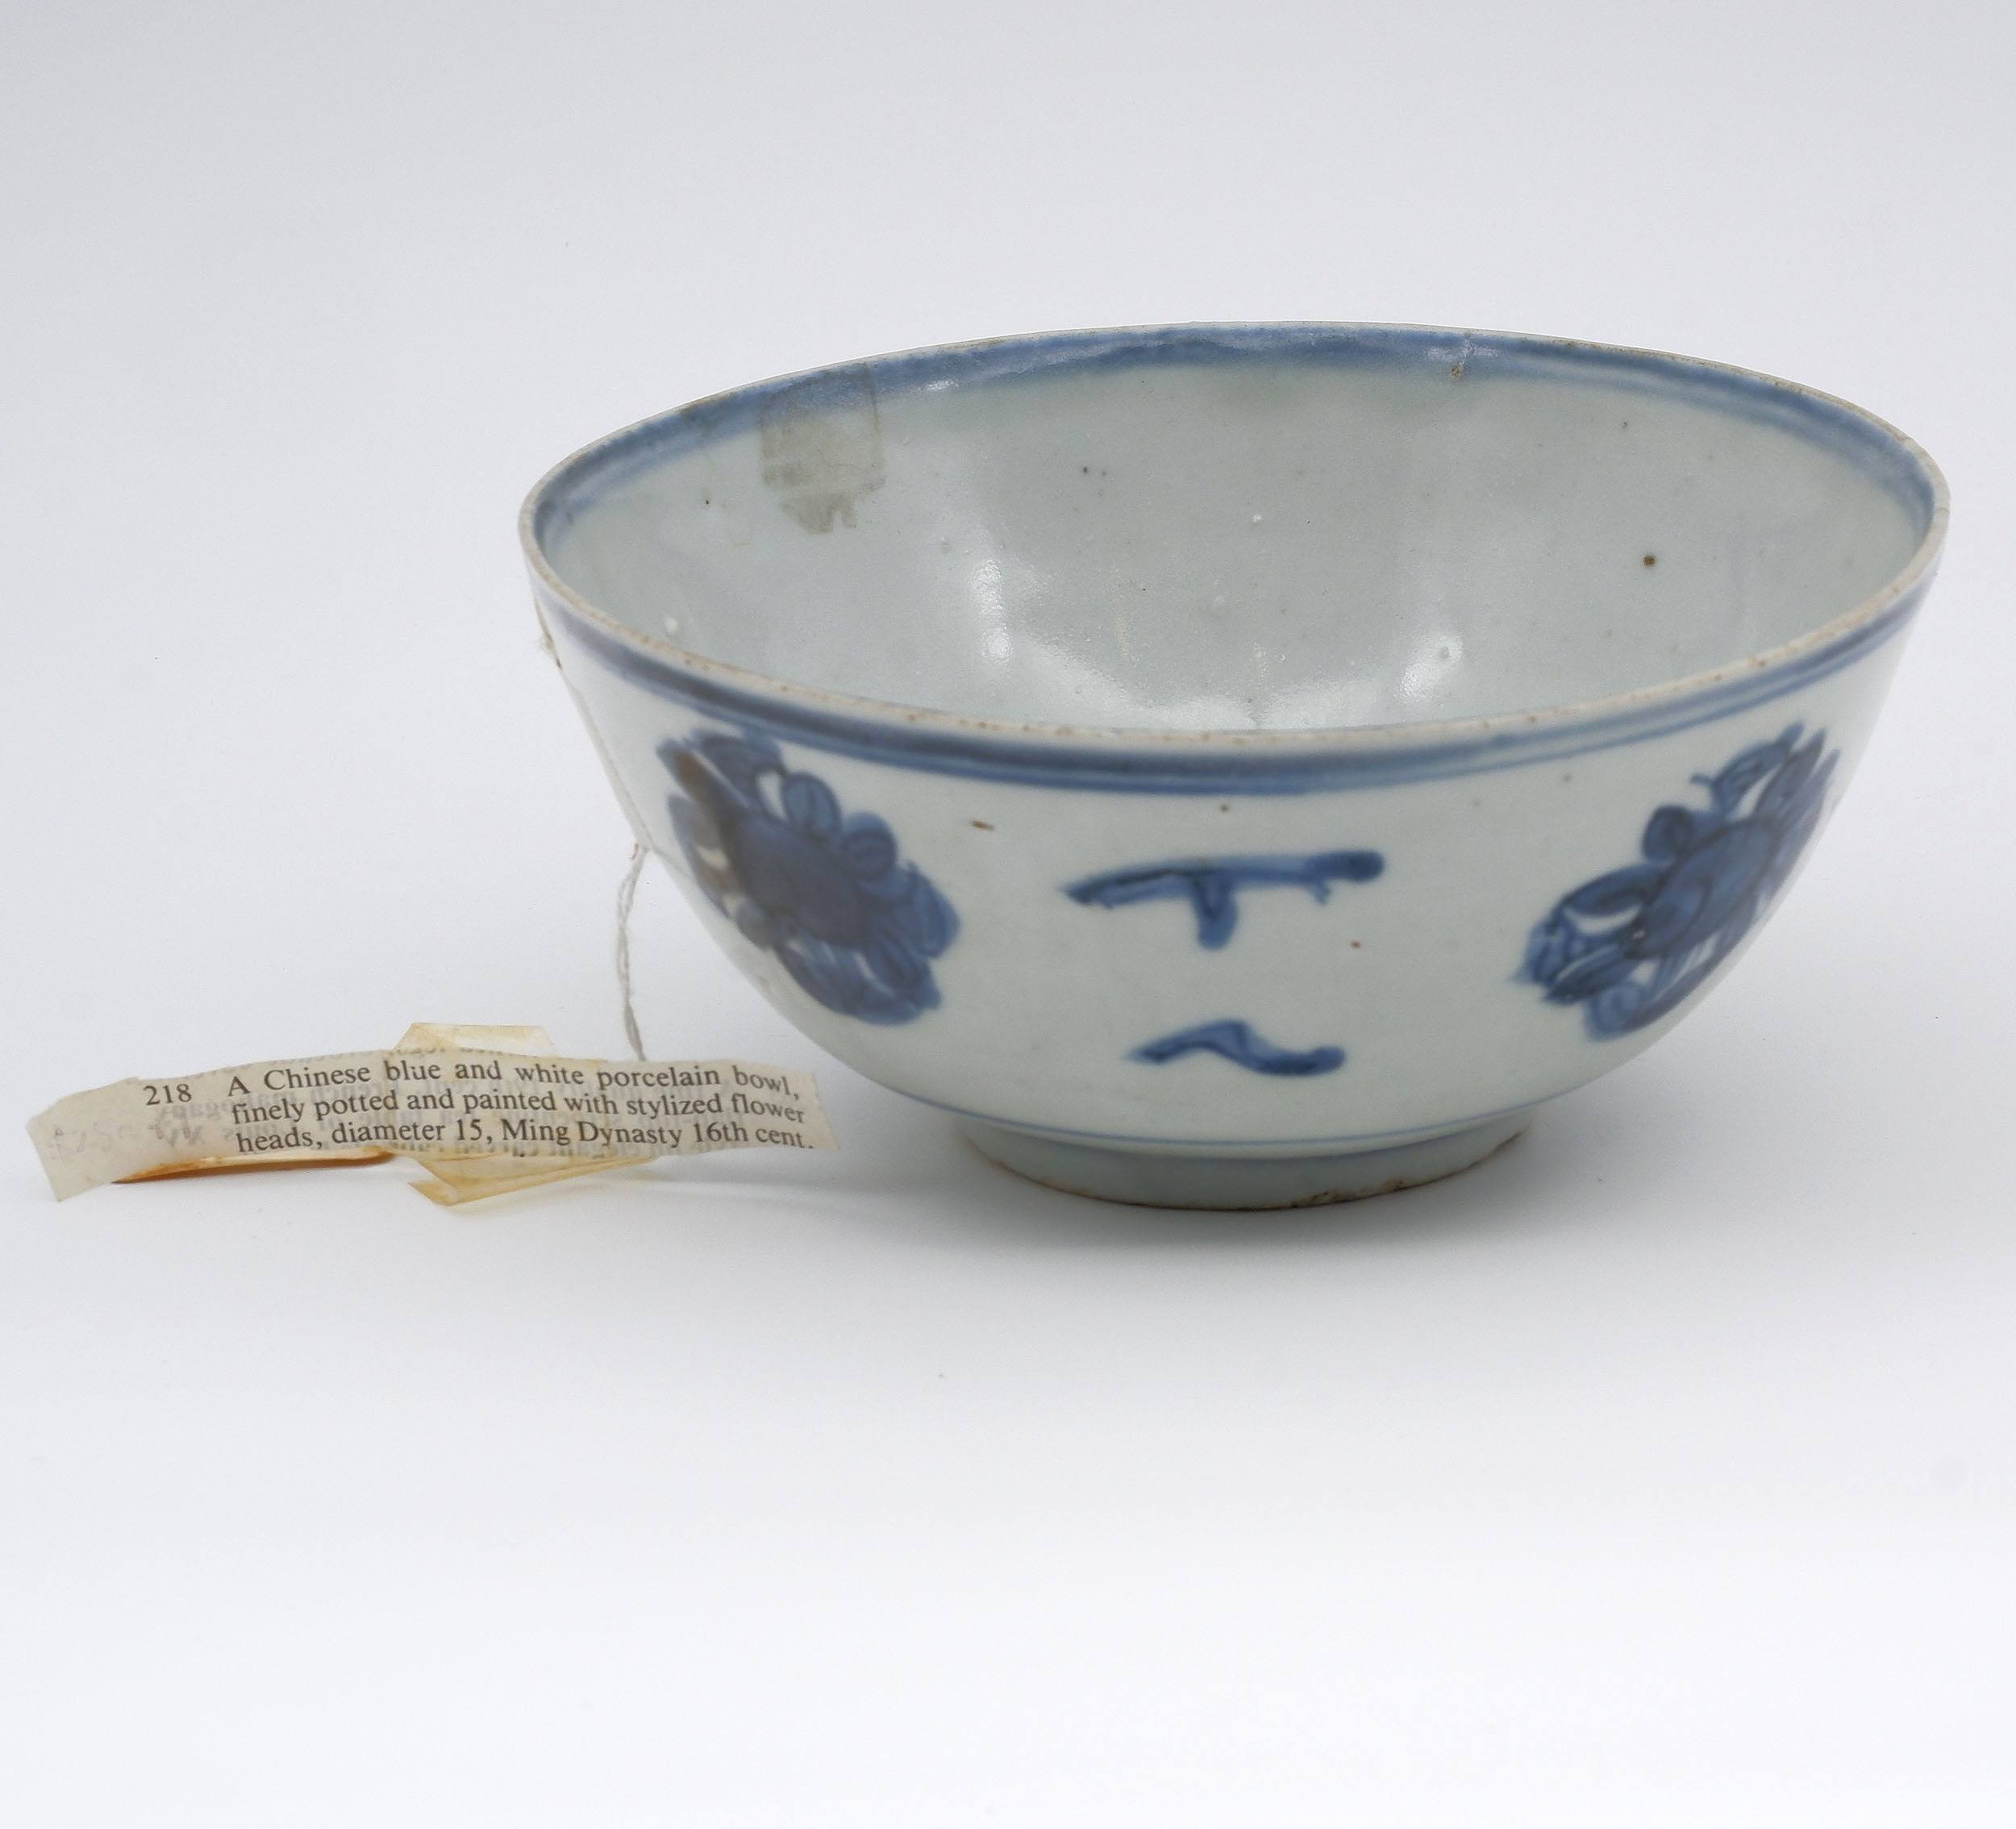 'Chinese Late Ming Blue and White Bowl, 16th Century'